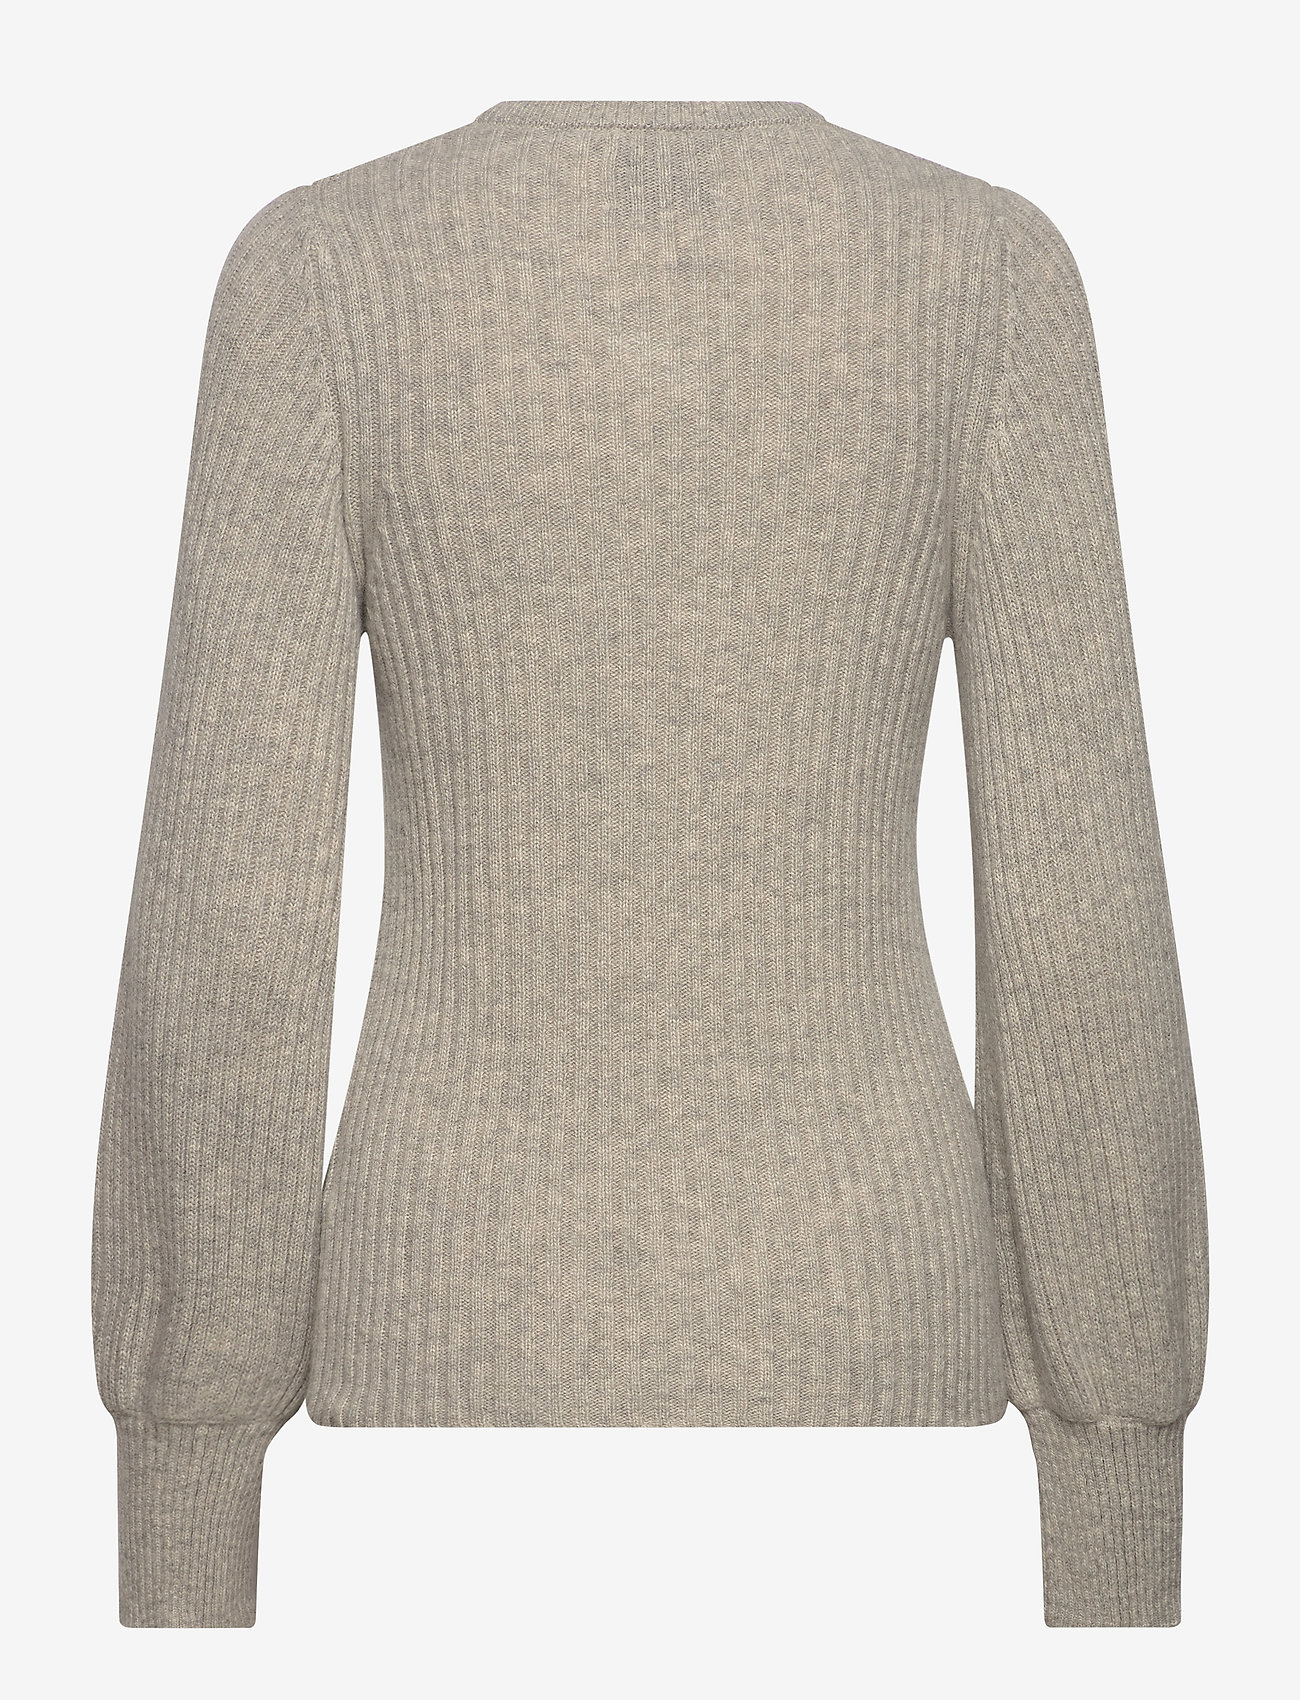 Recy Soft Knit Kaxilla V   - Mads Nørgaard -  Women's Blouses & Shirts Cost